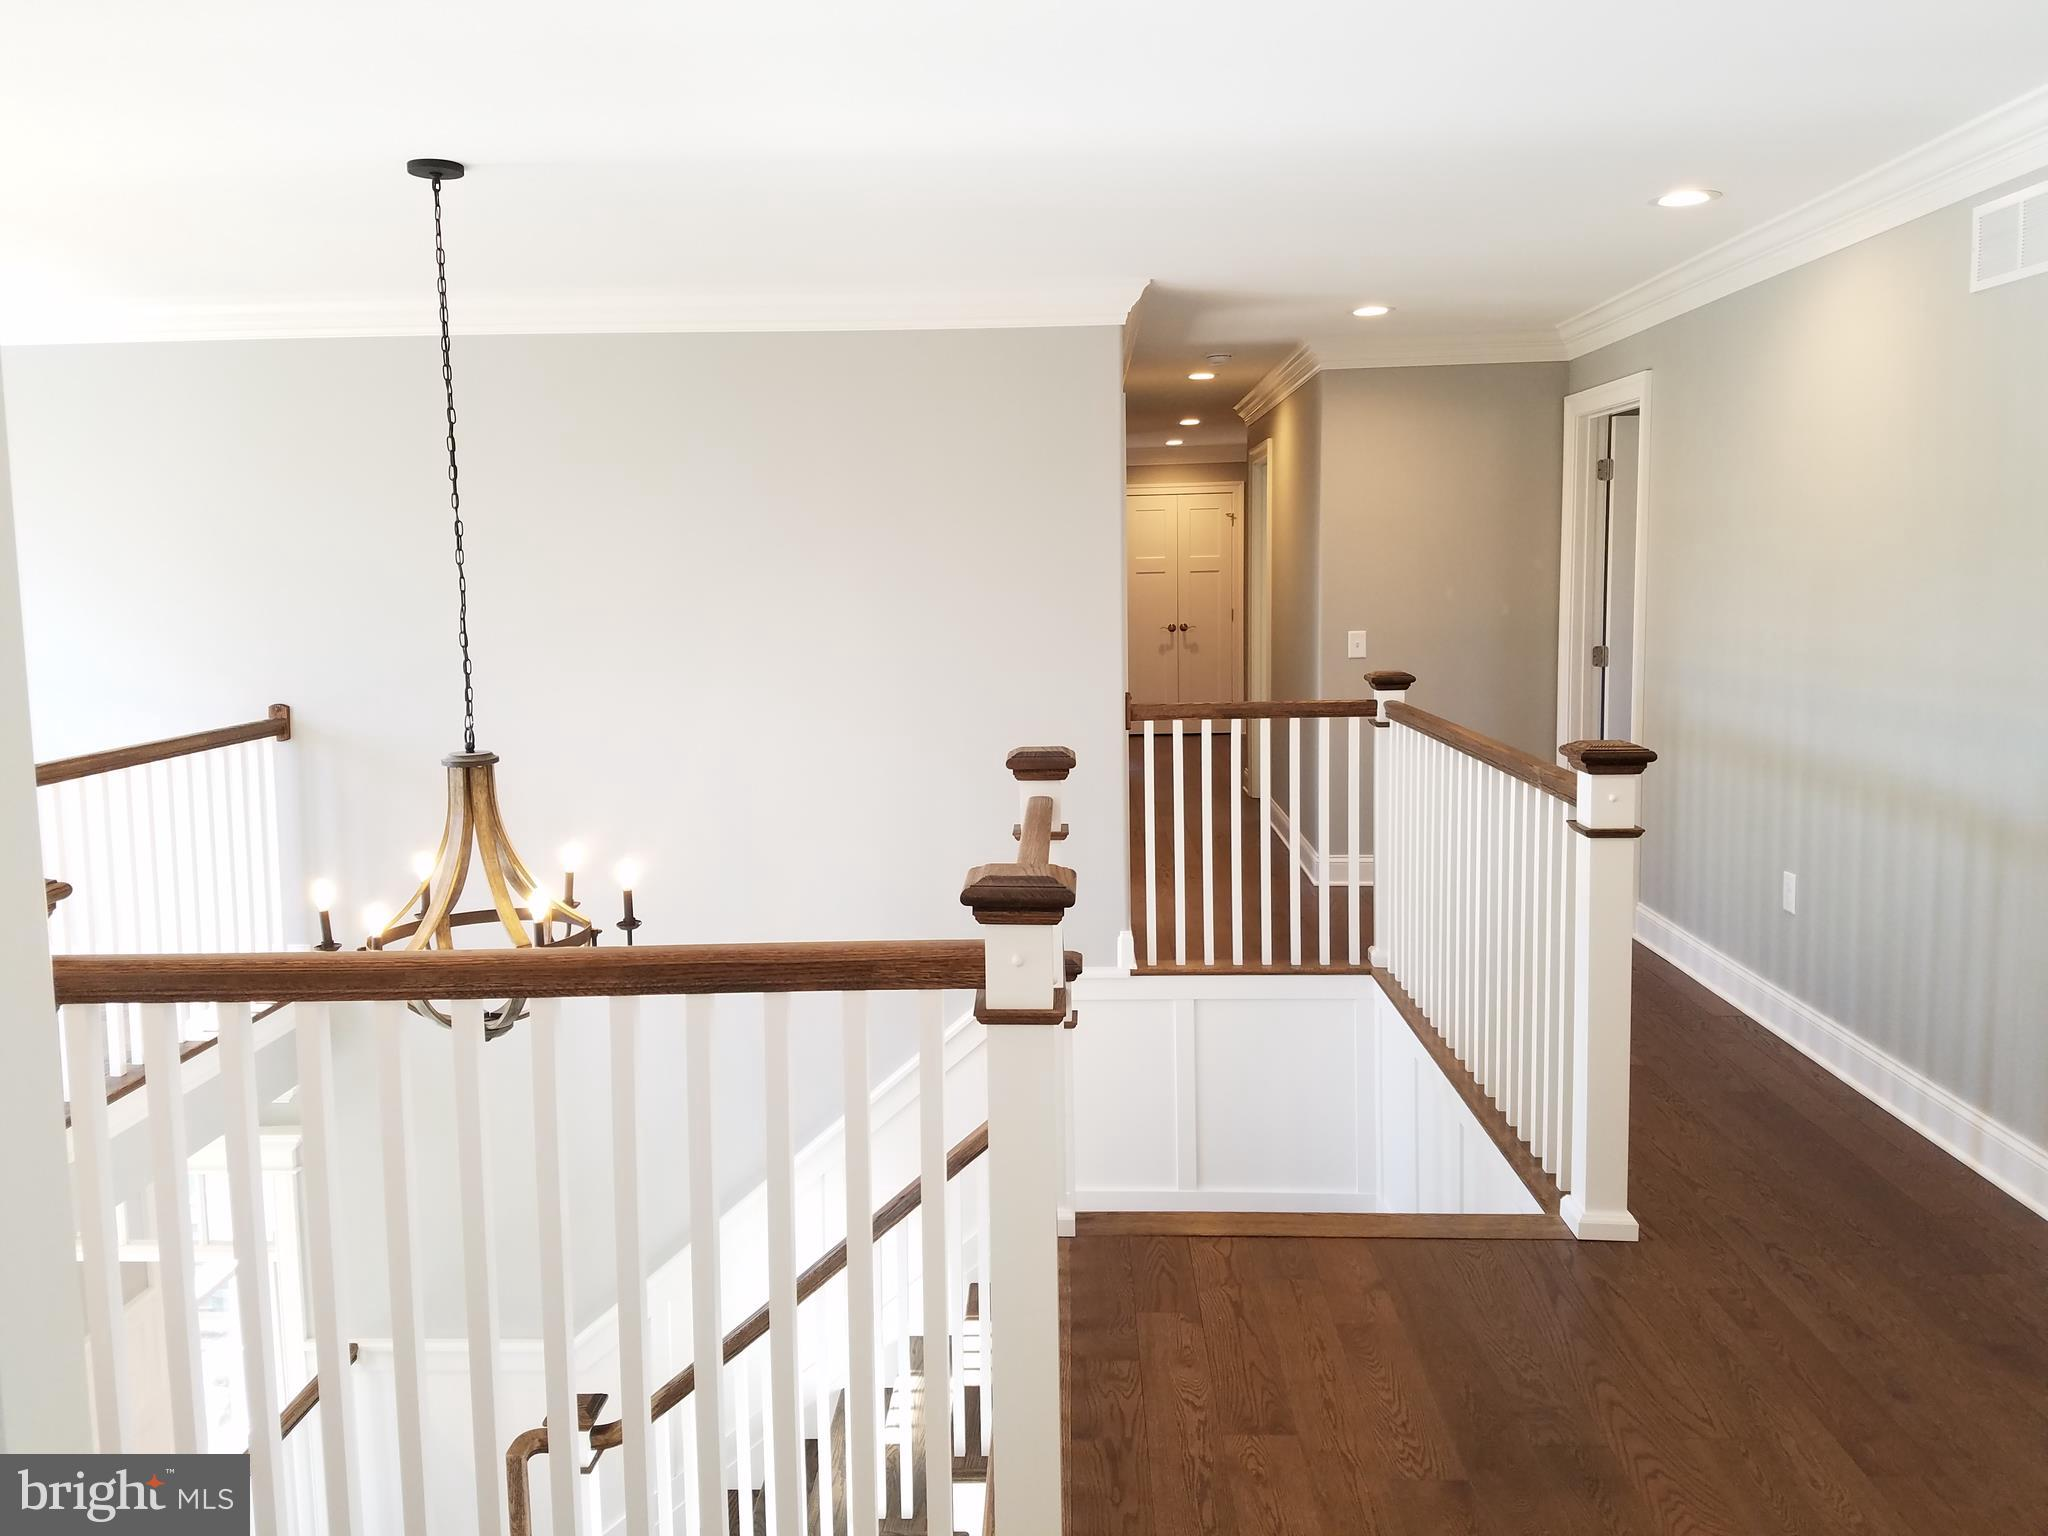 Open staircase from foyer to second floor.